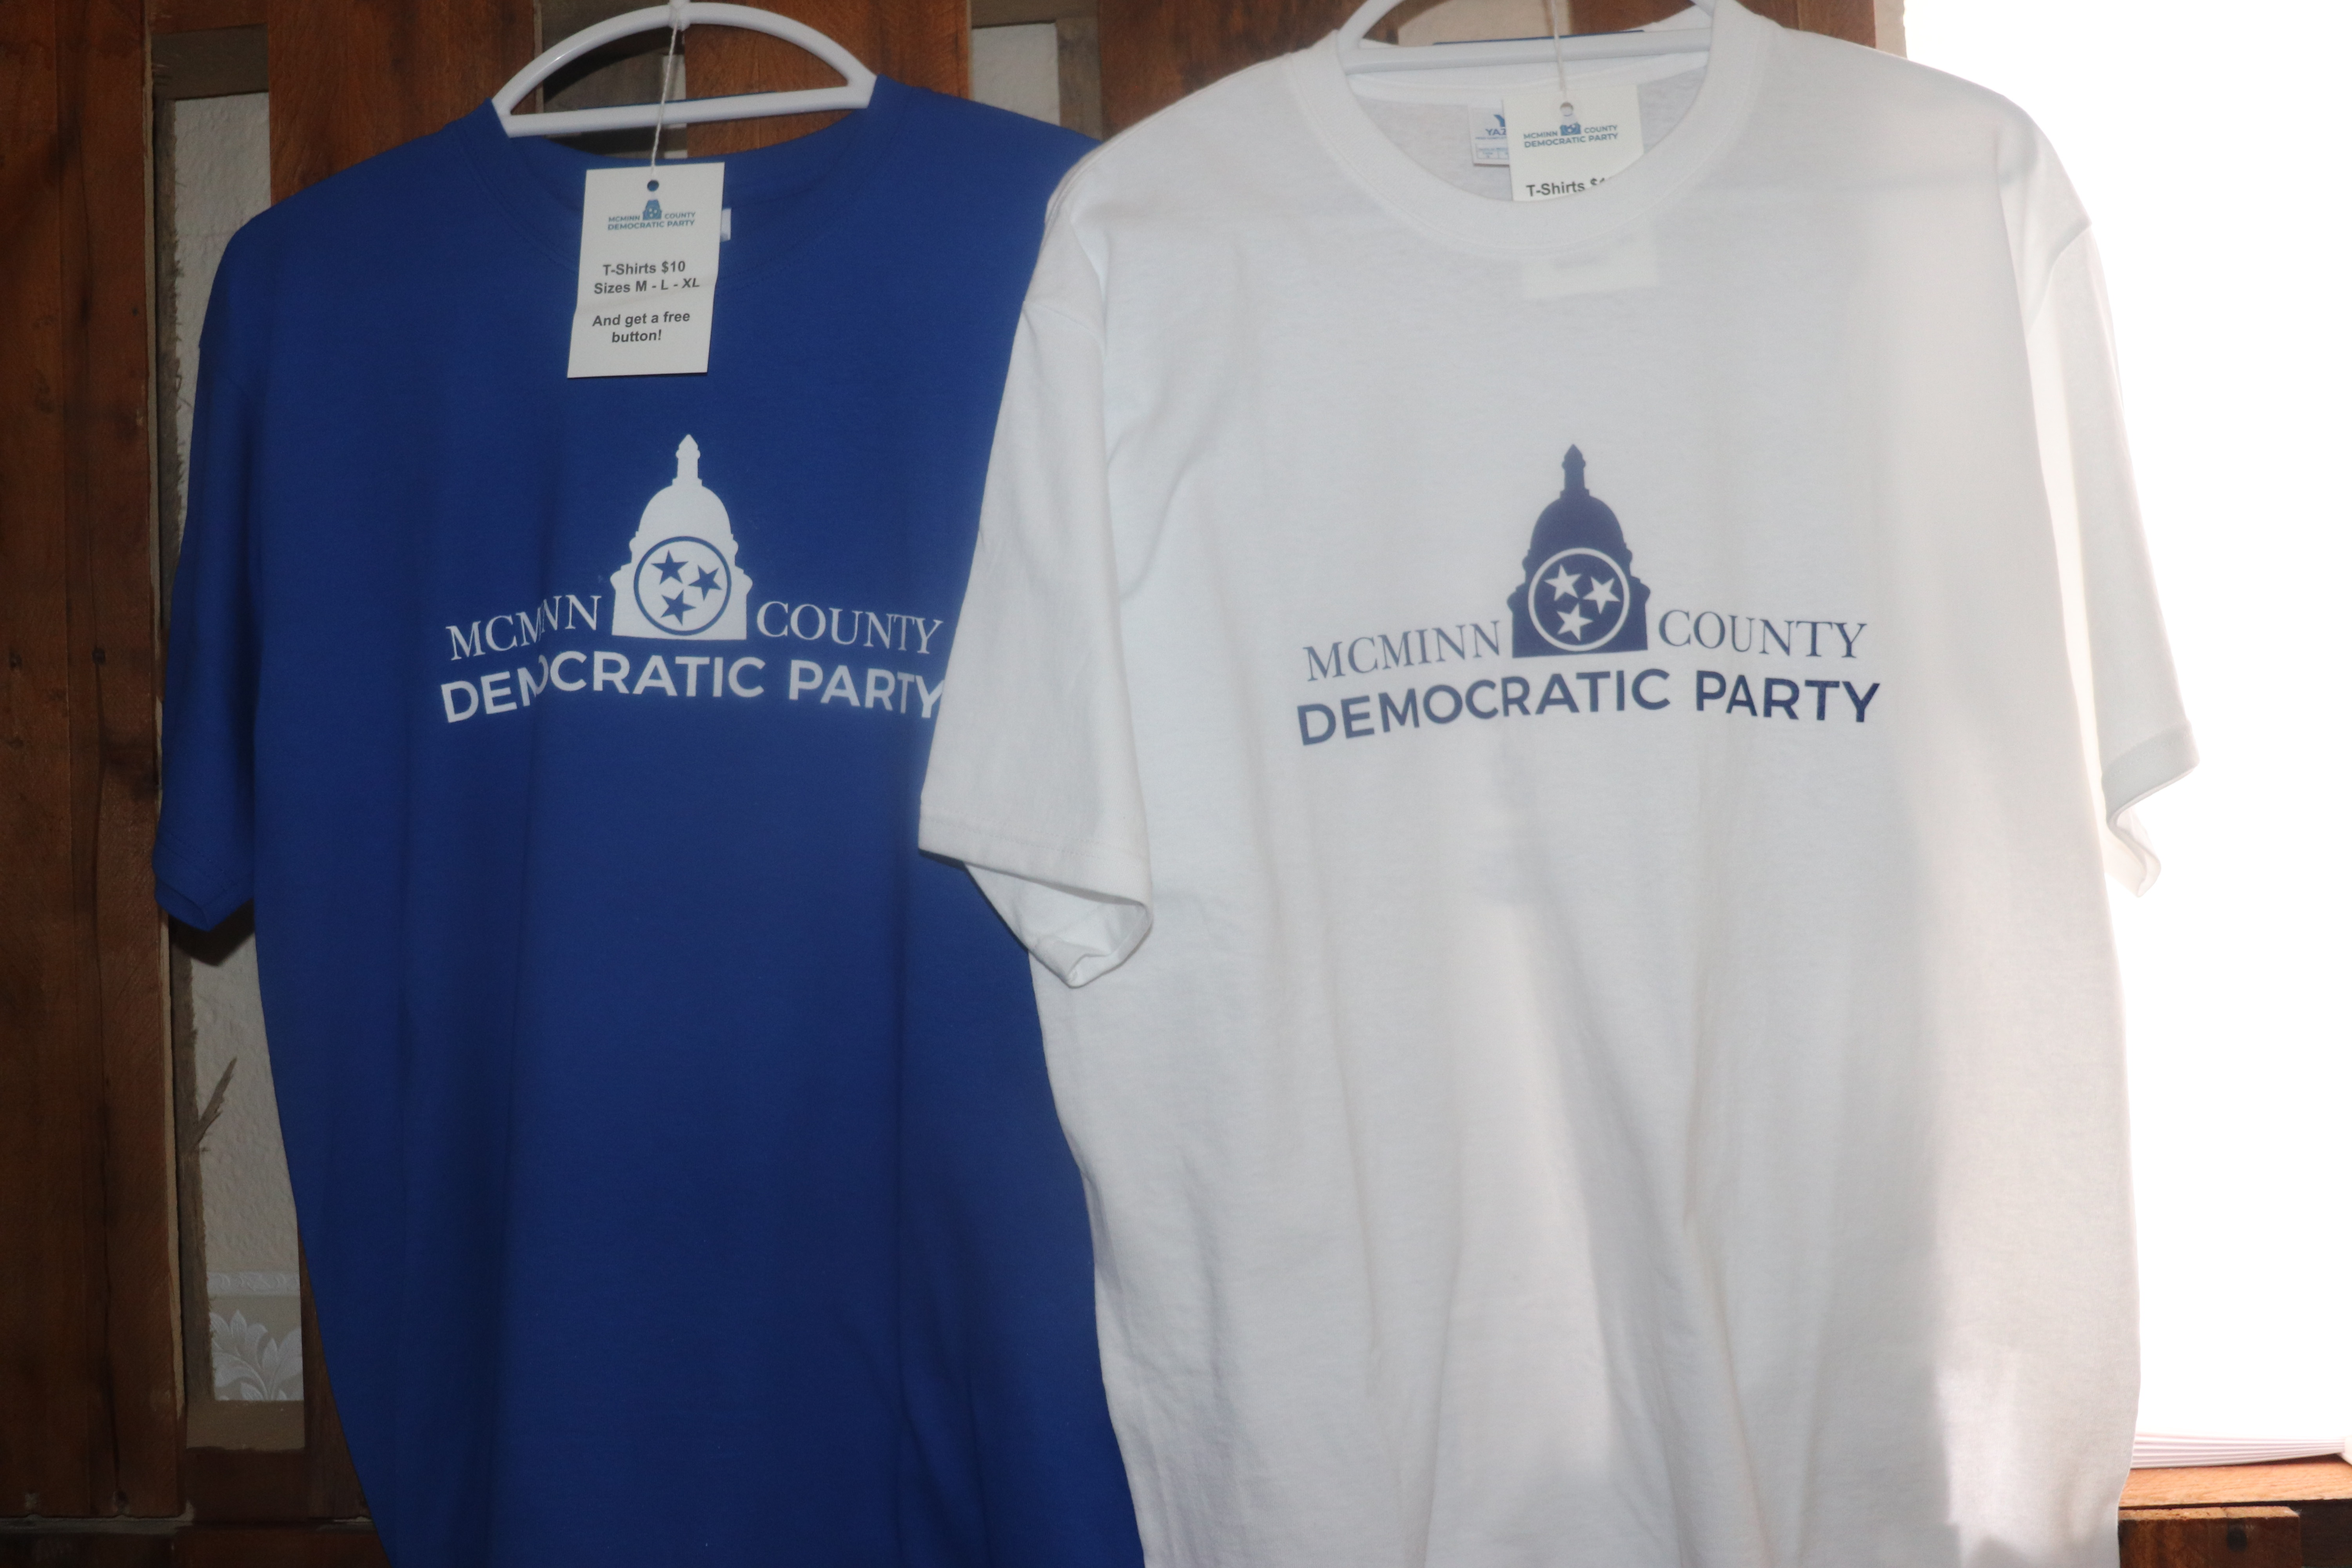 Blue or white t-shirt with McMinn County Democratic Party logo